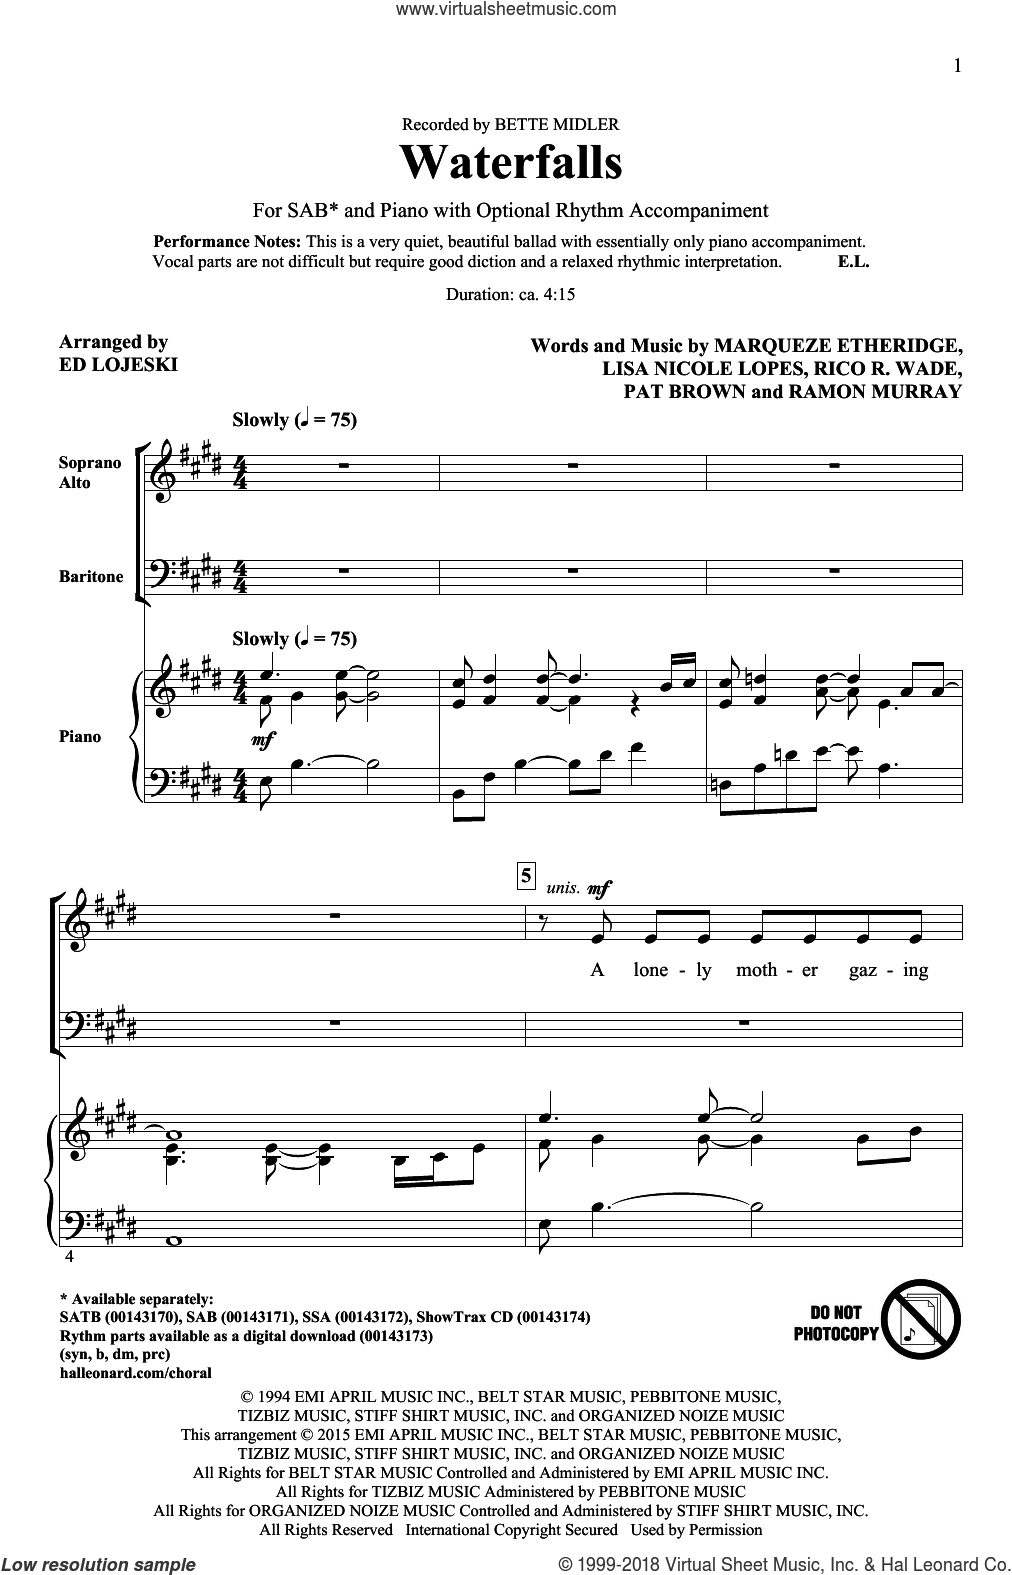 Waterfalls sheet music for choir (SAB: soprano, alto, bass) by Marqueze Etheridge, Ed Lojeski, Bette Midler, Lisa Nicole Lopes, Pat Brown, Ramon Murray and Rico Wade, intermediate skill level